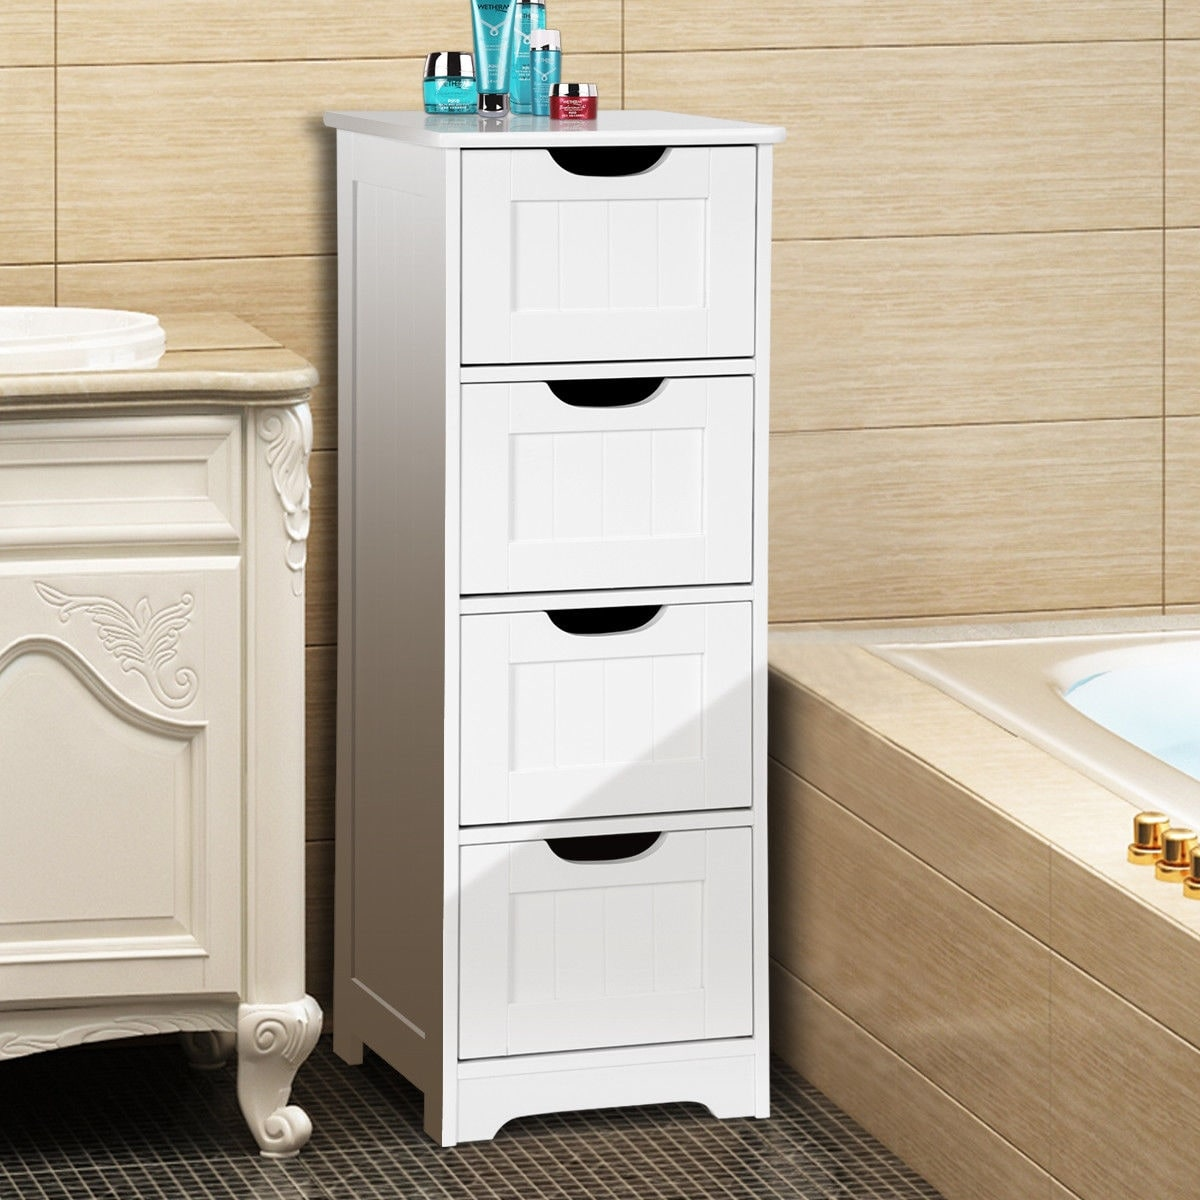 Gymax Bathroom Floor Cabinet Wooden Free Standing Storage Side Organizer W 4 Drawers